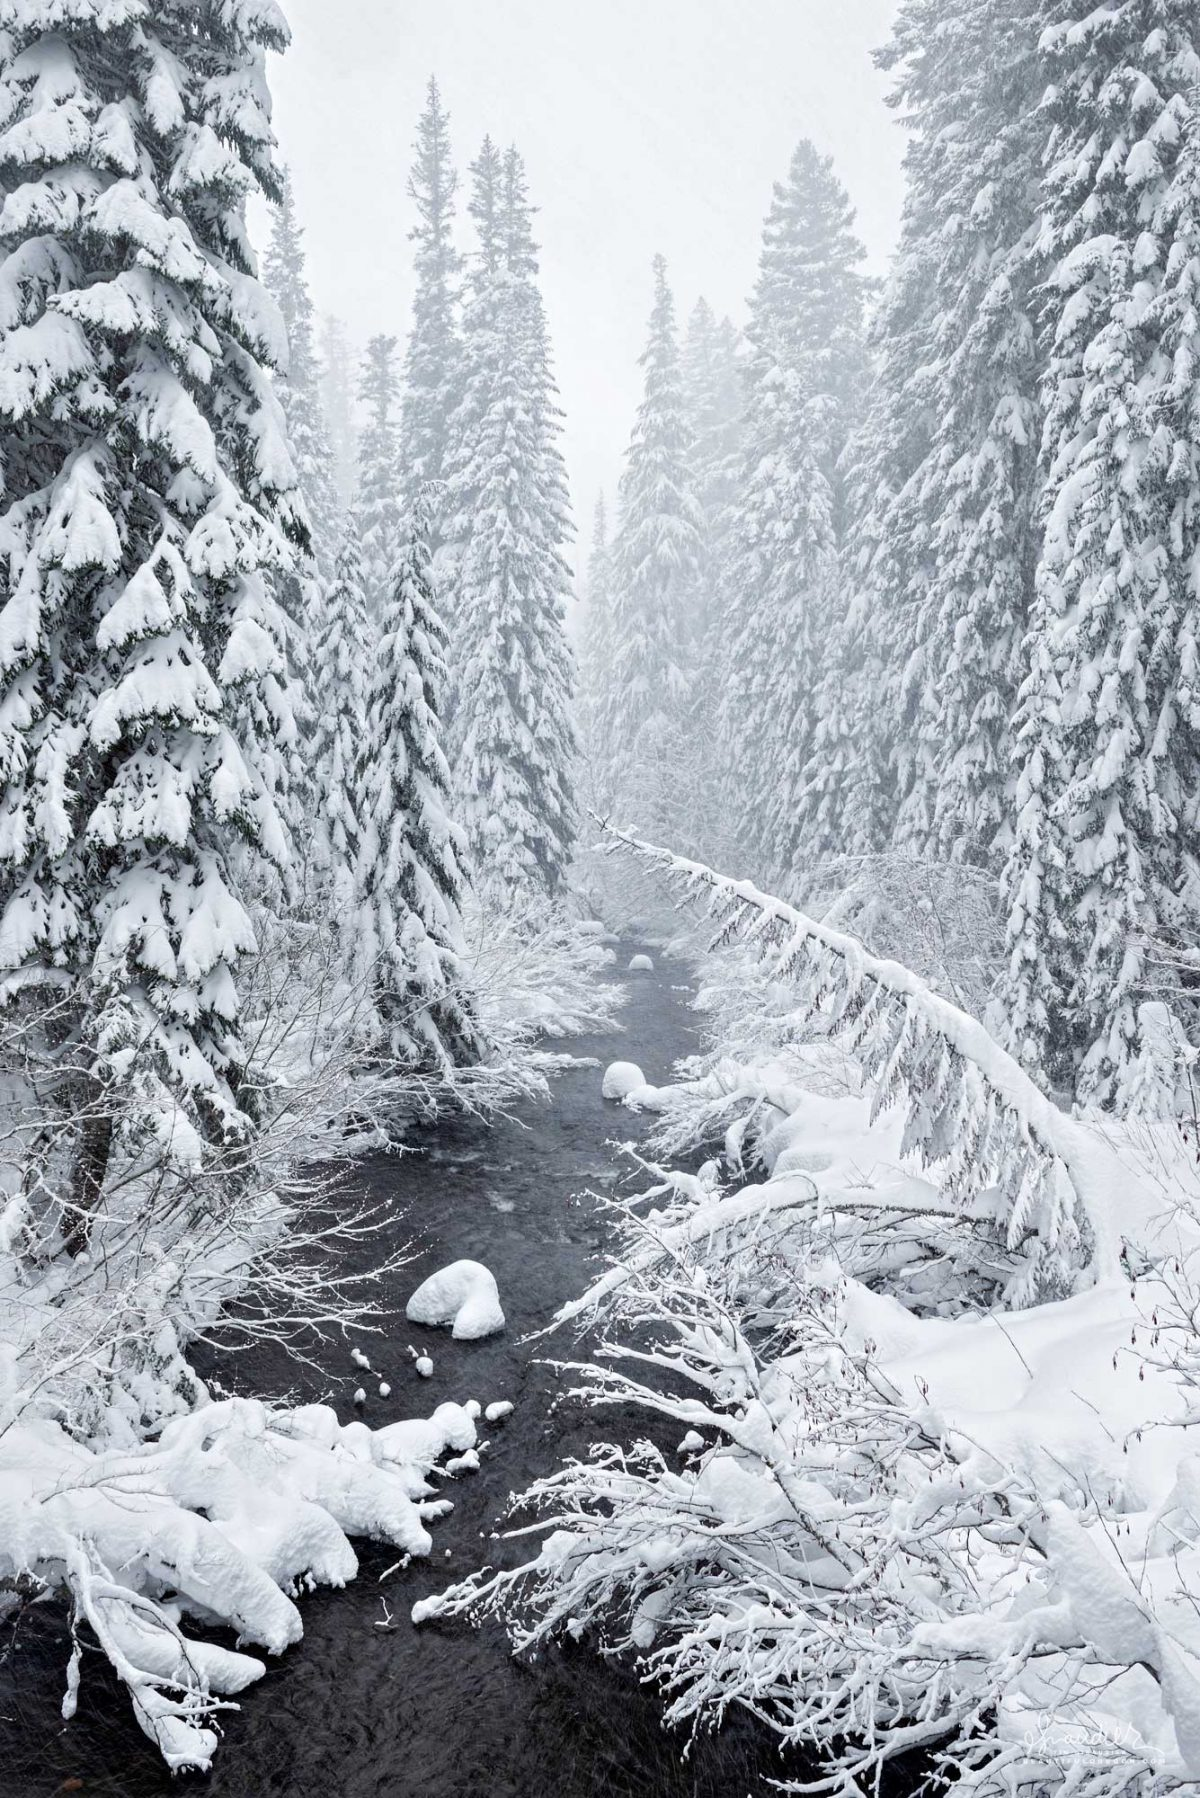 Salt Creek quietly makes its way through a forest of freshly fallen snow. Willamette National Forest, Lane County, Oregon West Cascades.